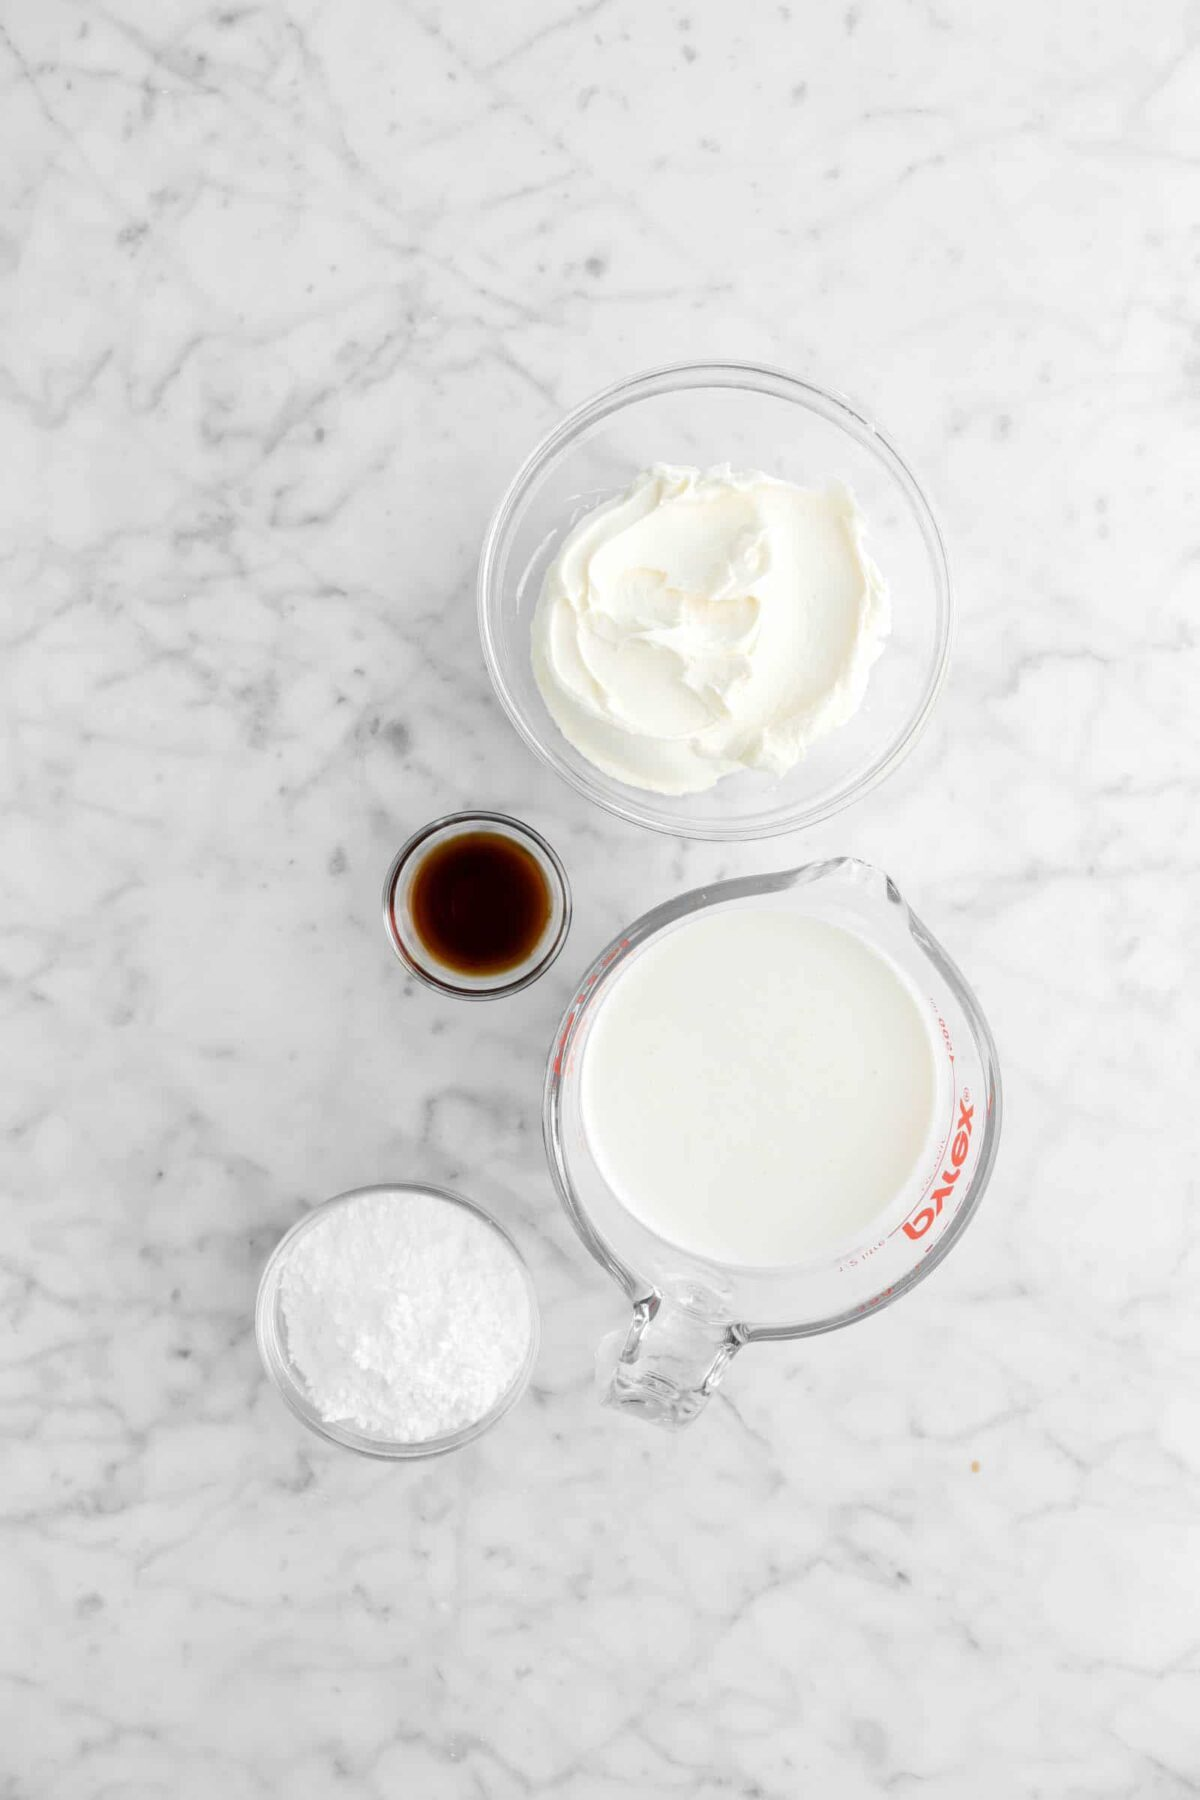 mascarpone, vanilla, heavy cream, and powdered sugar in glass bowls on a marble counter